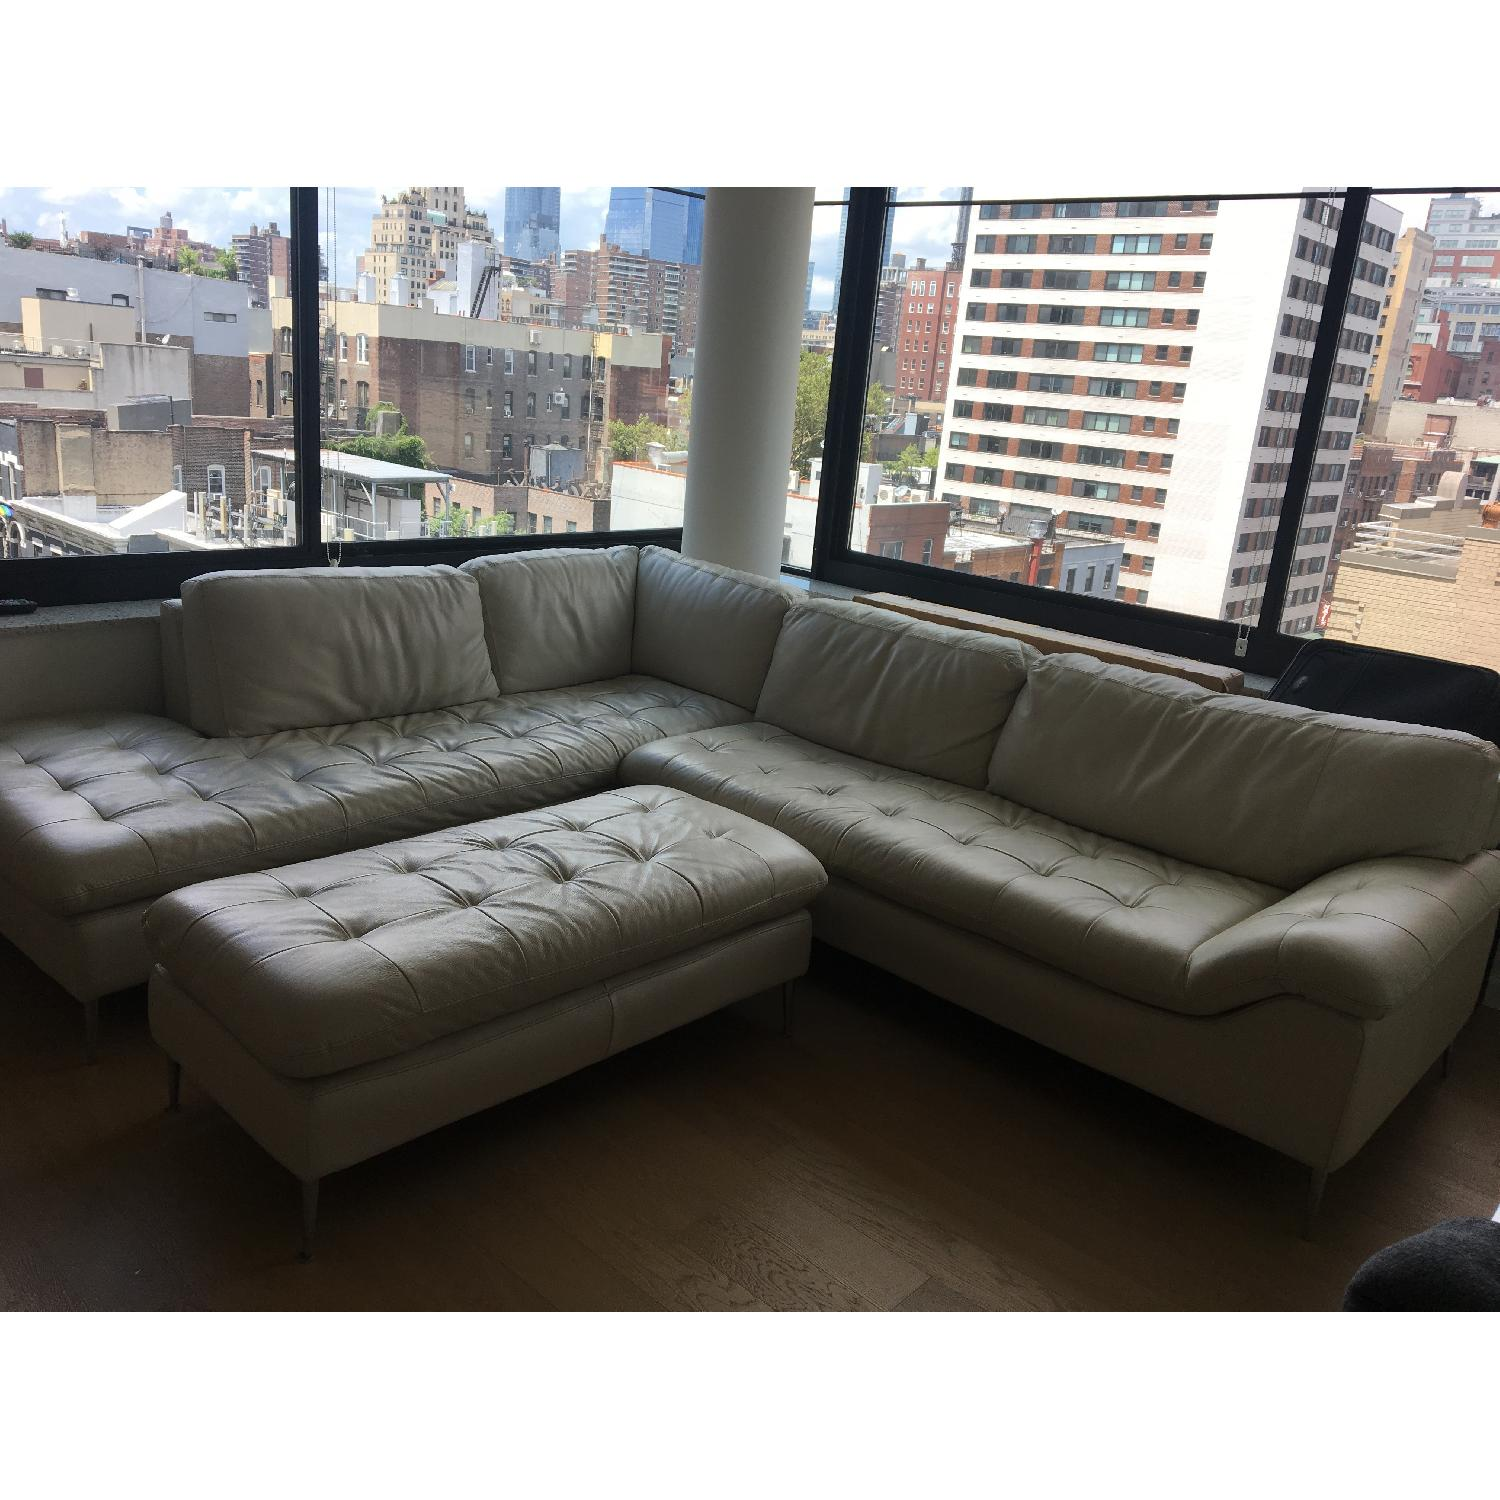 Cream Leather Sectional Sofa Ottoman